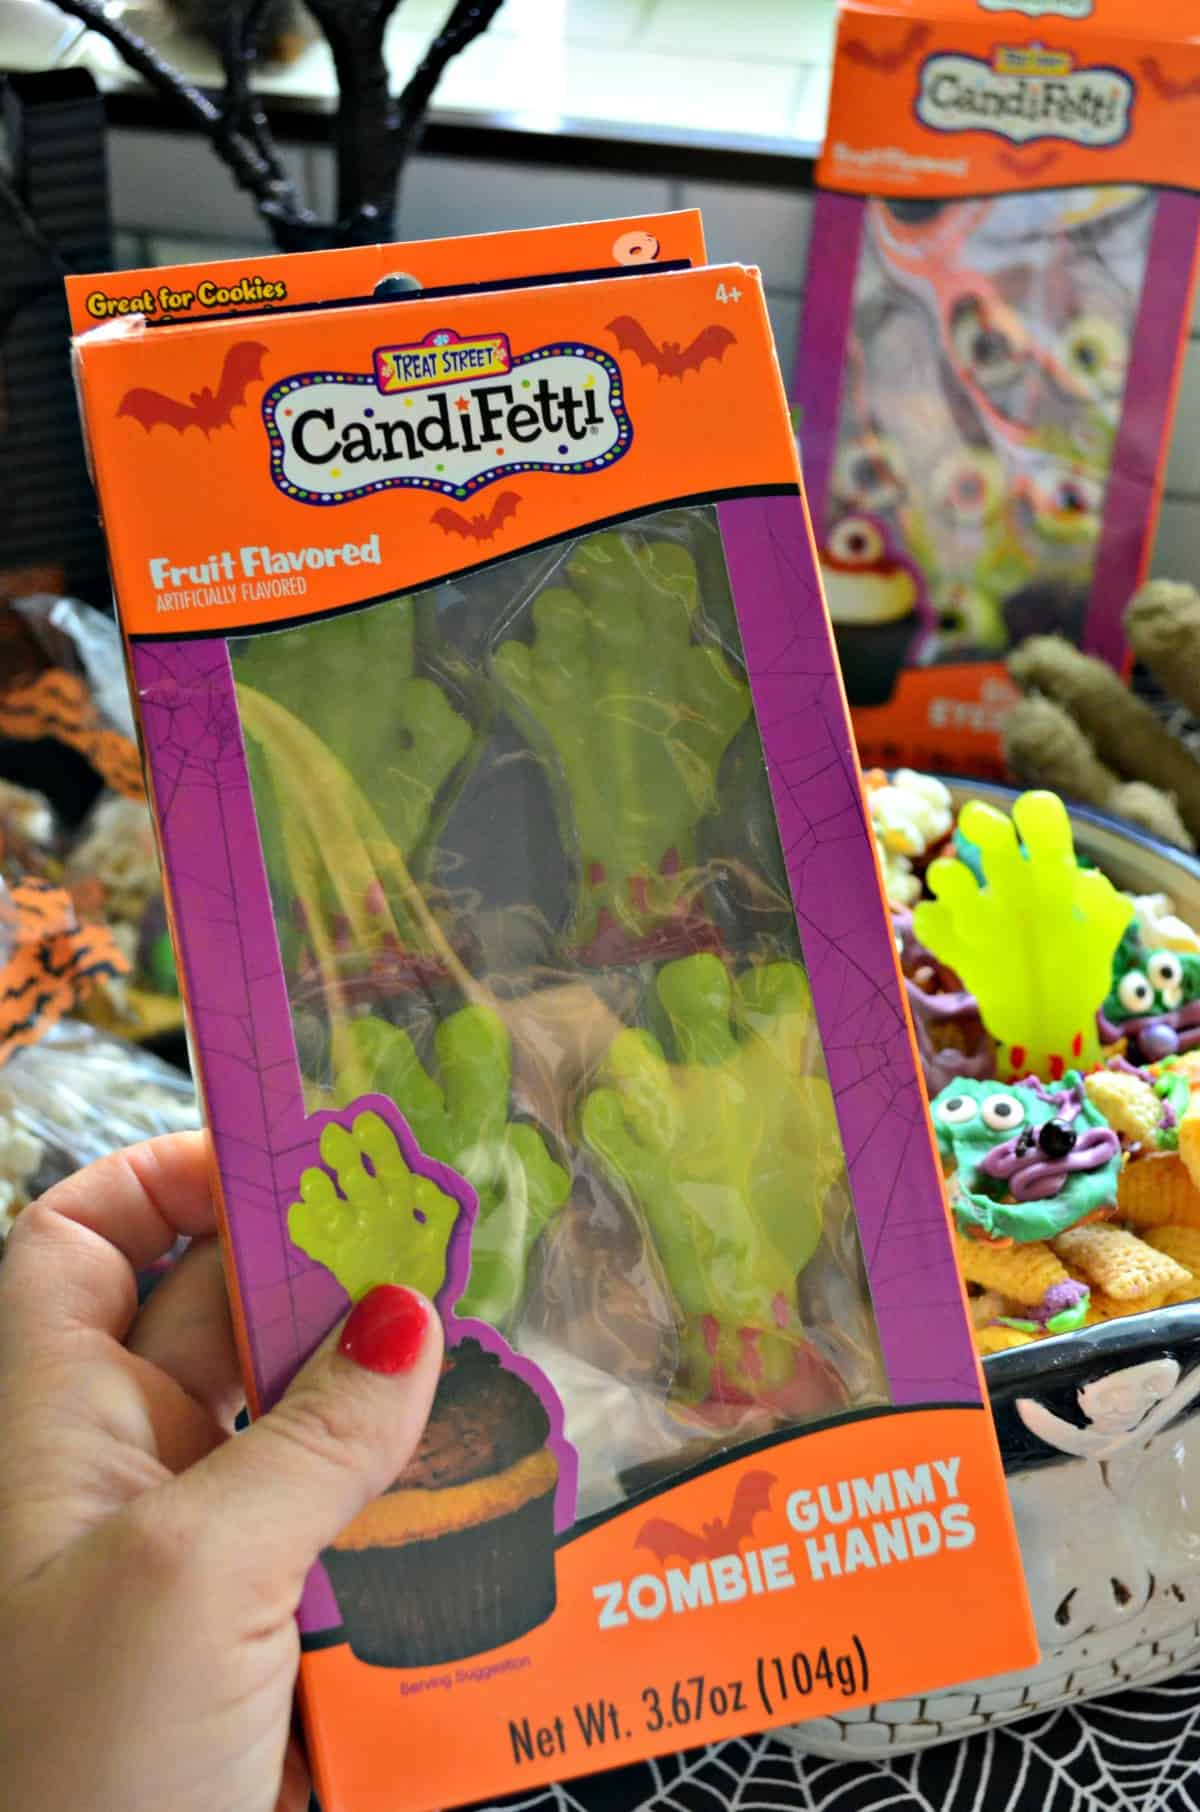 box of candifetti fruit flavored gummy zombie hands.